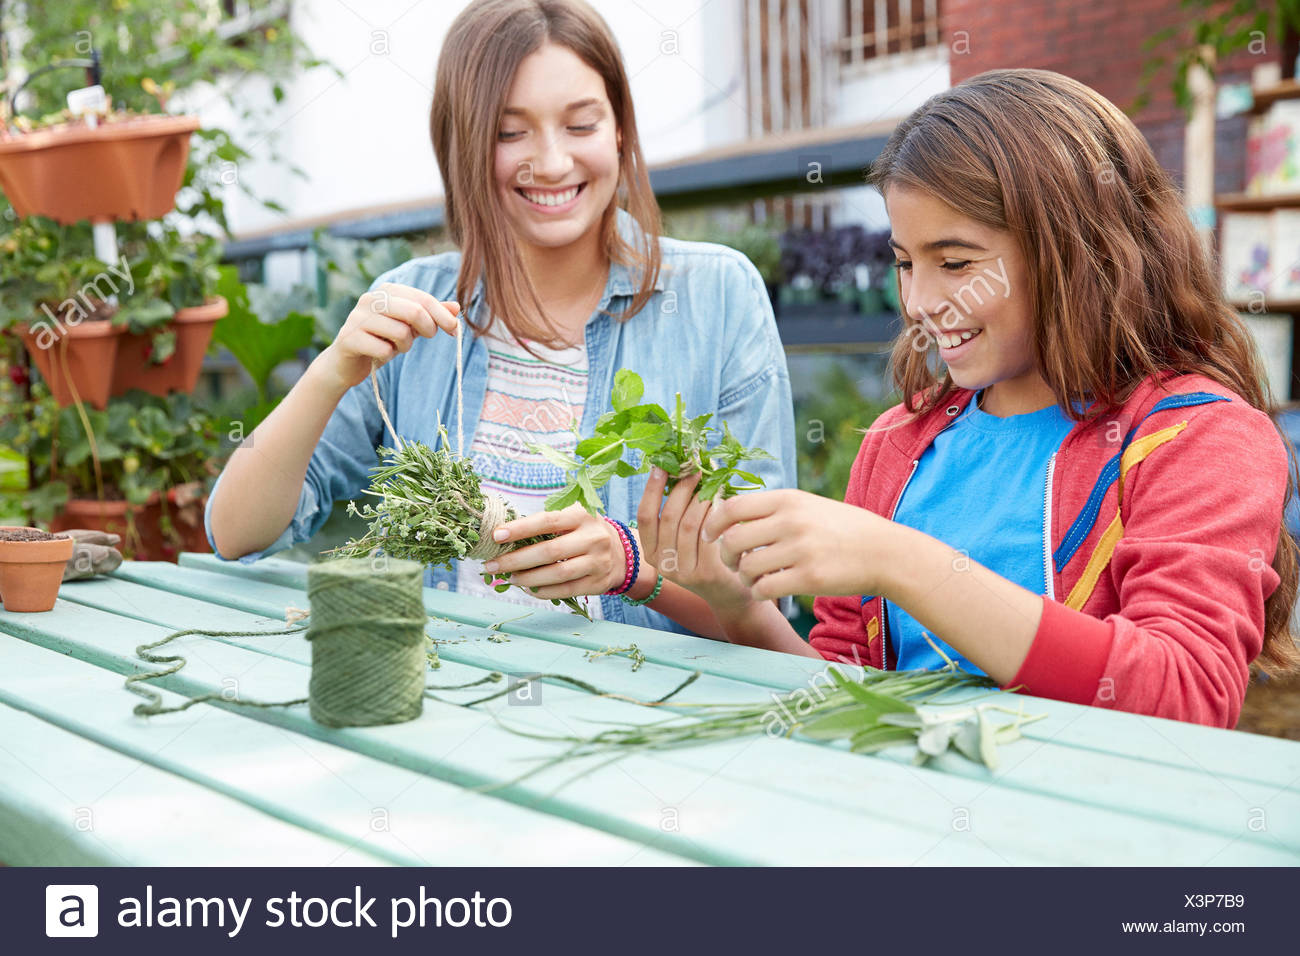 Latina sisters bundling herbs at garden table - Stock Image